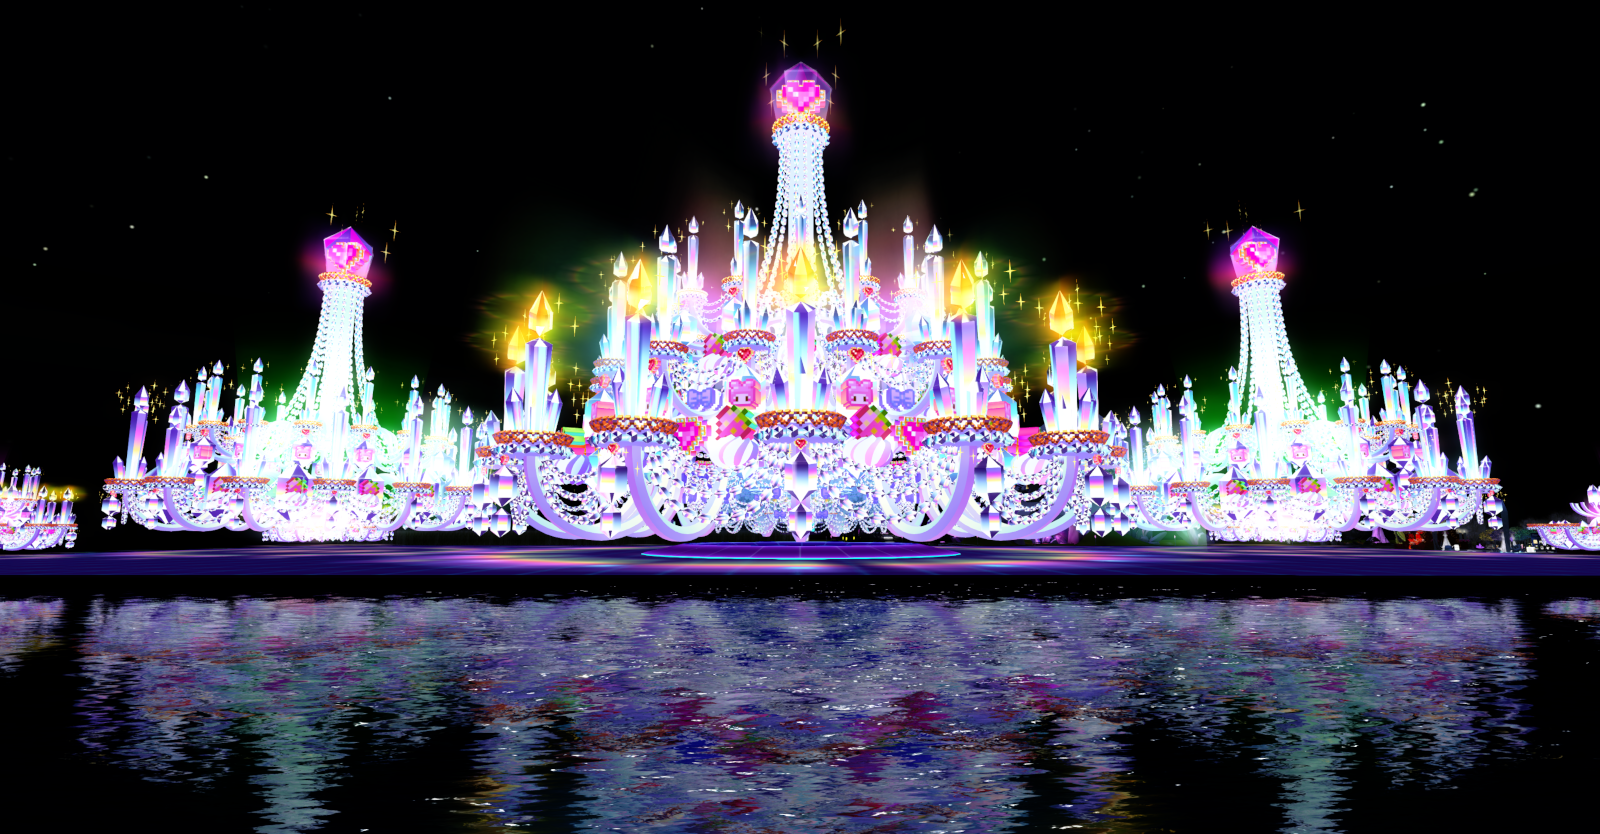 Cake Stage, reflecting the crystal theme